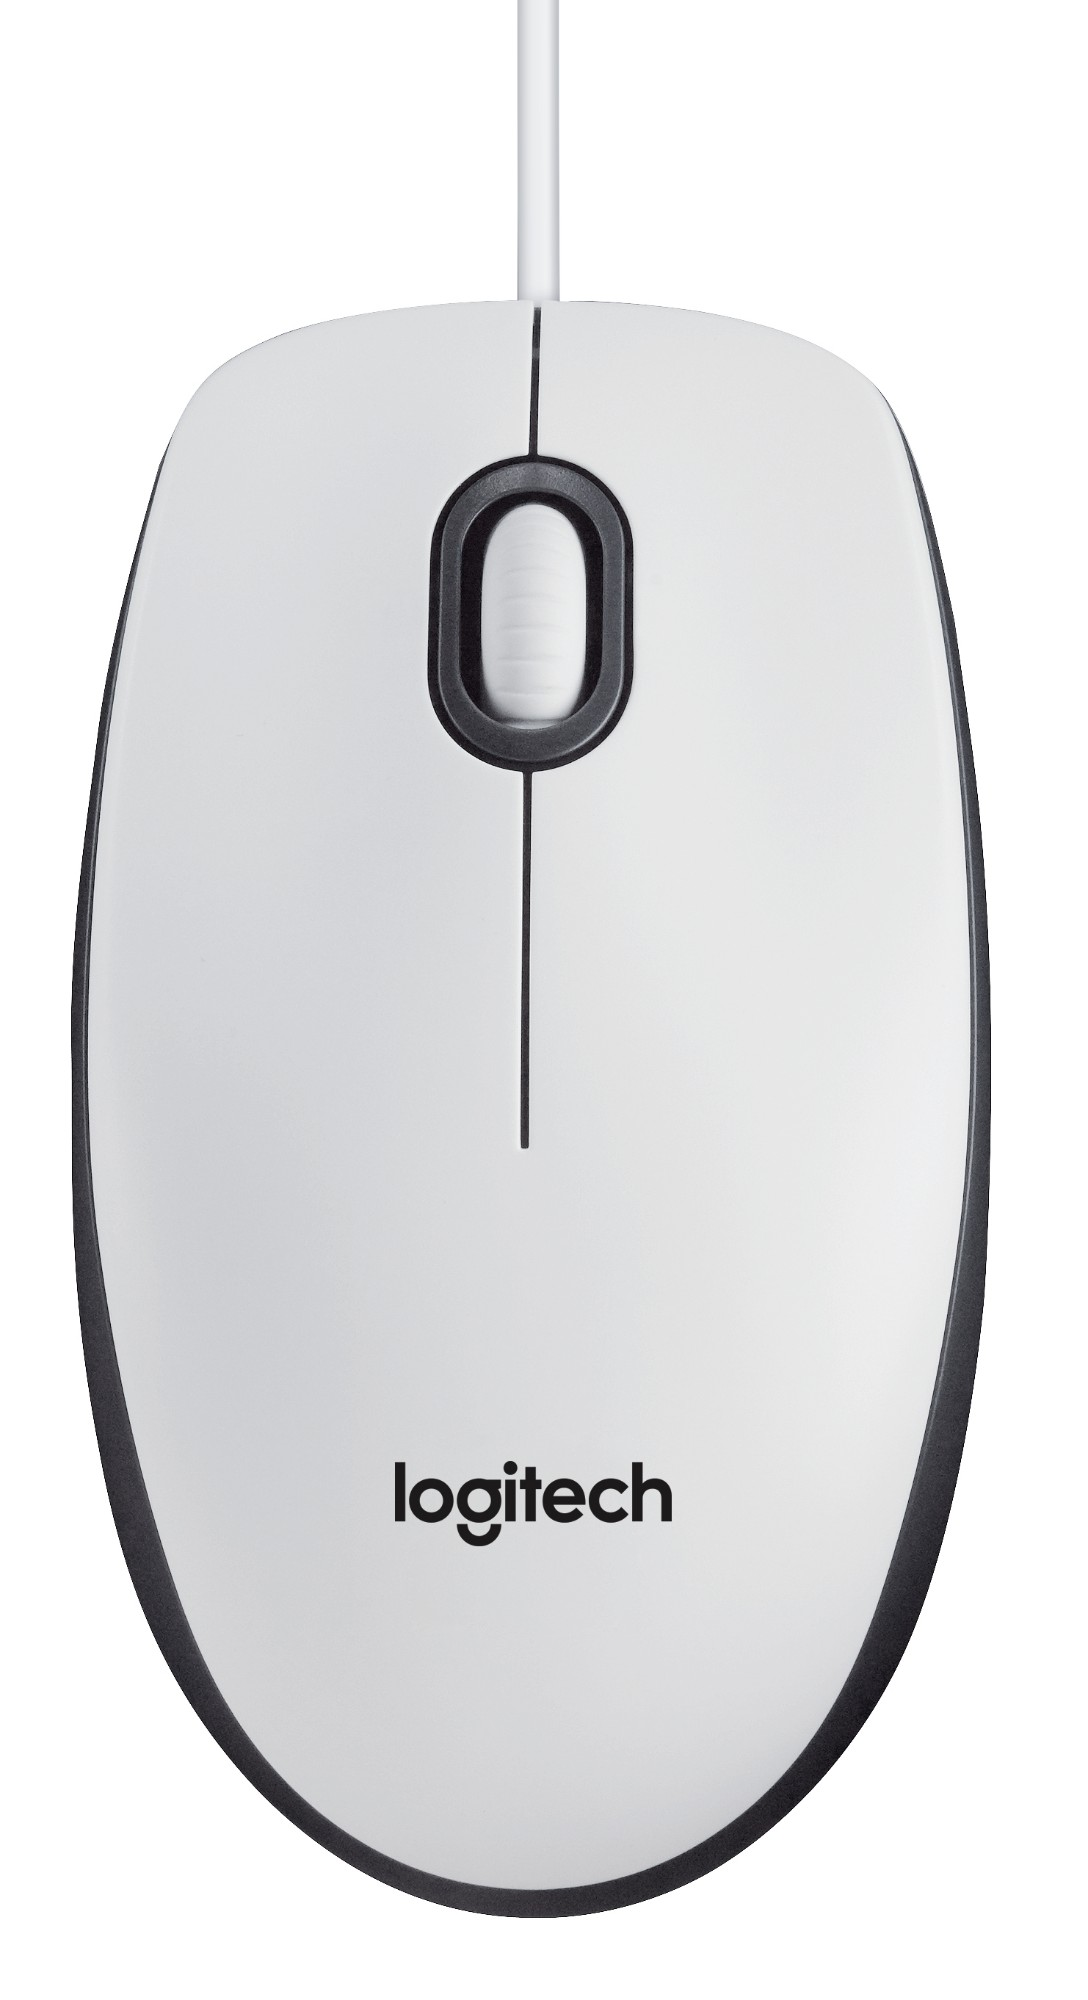 Logitech M100 mouse USB Optical 1000 DPI Ambidextrous